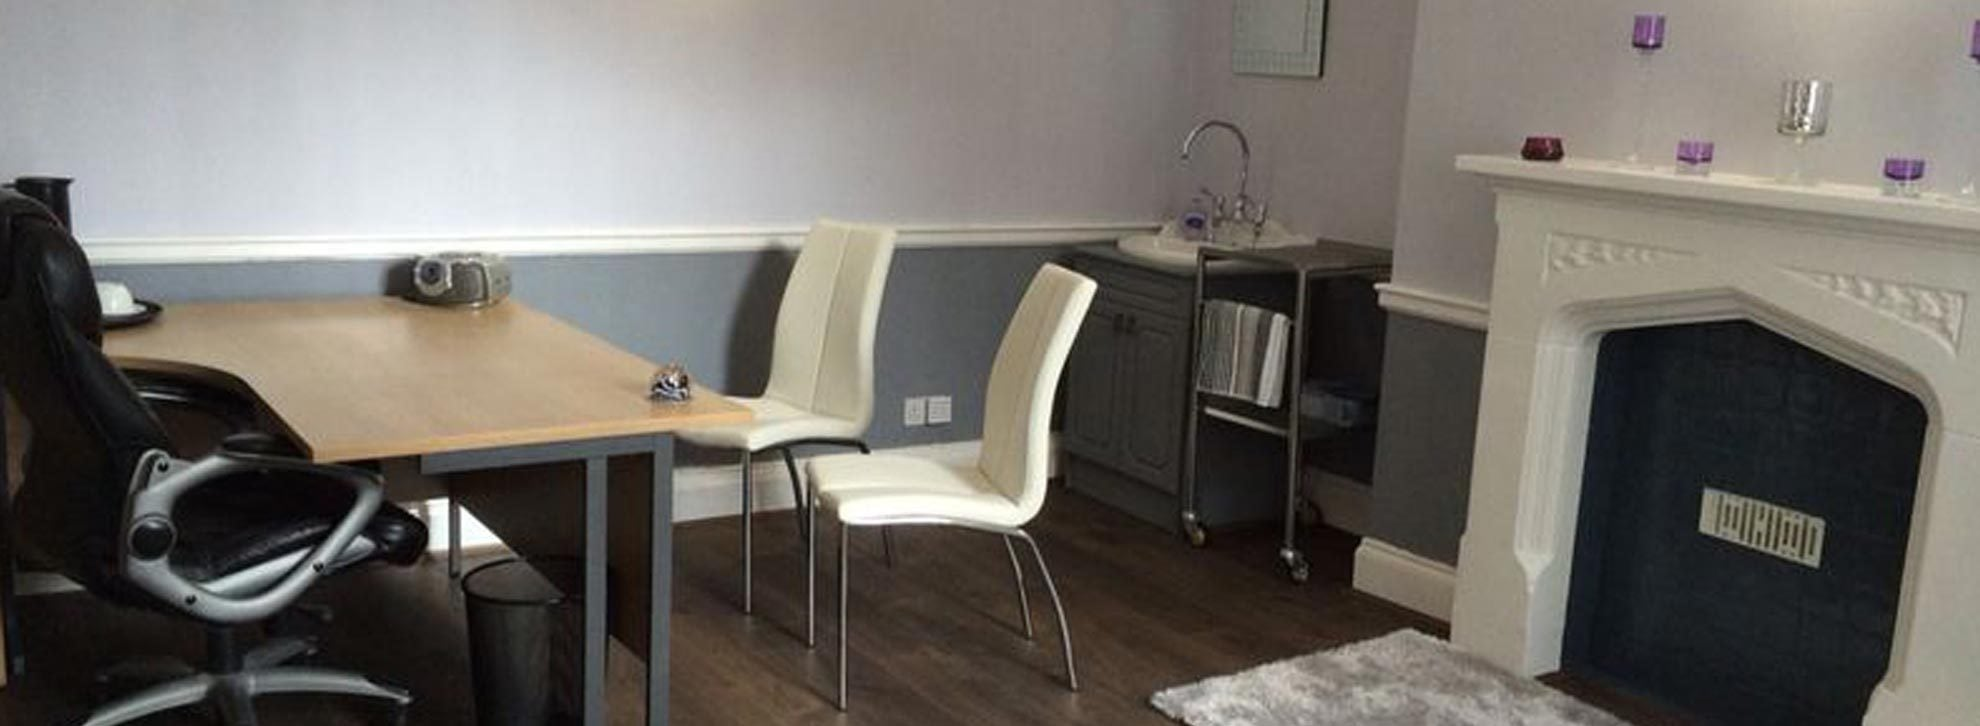 Liverpool Cosmetic Clinic - Consulting Rooms